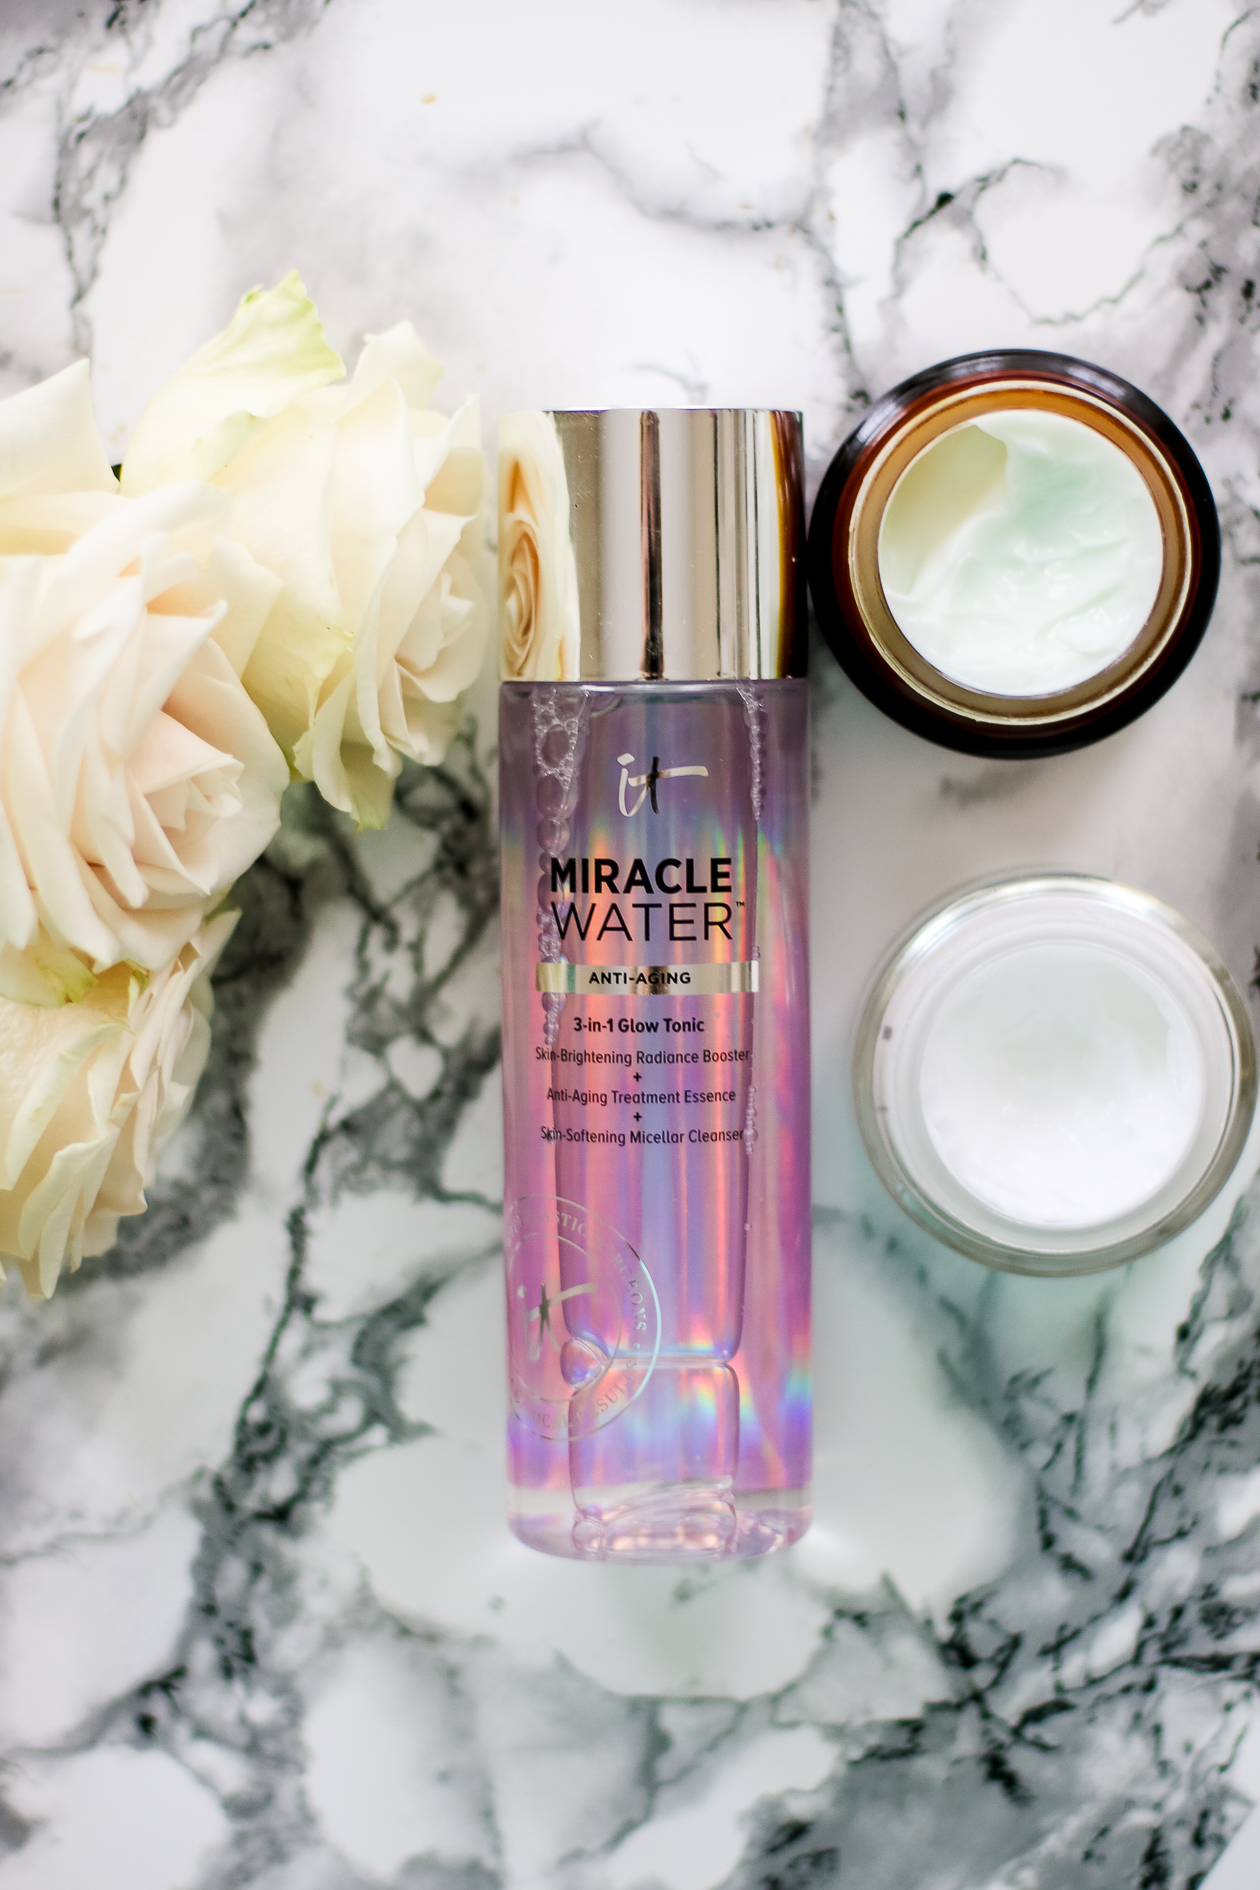 IT Cosmetics Miracle Water, Secret Sauce and Bye Bye Redness | @dcgirlinpearls